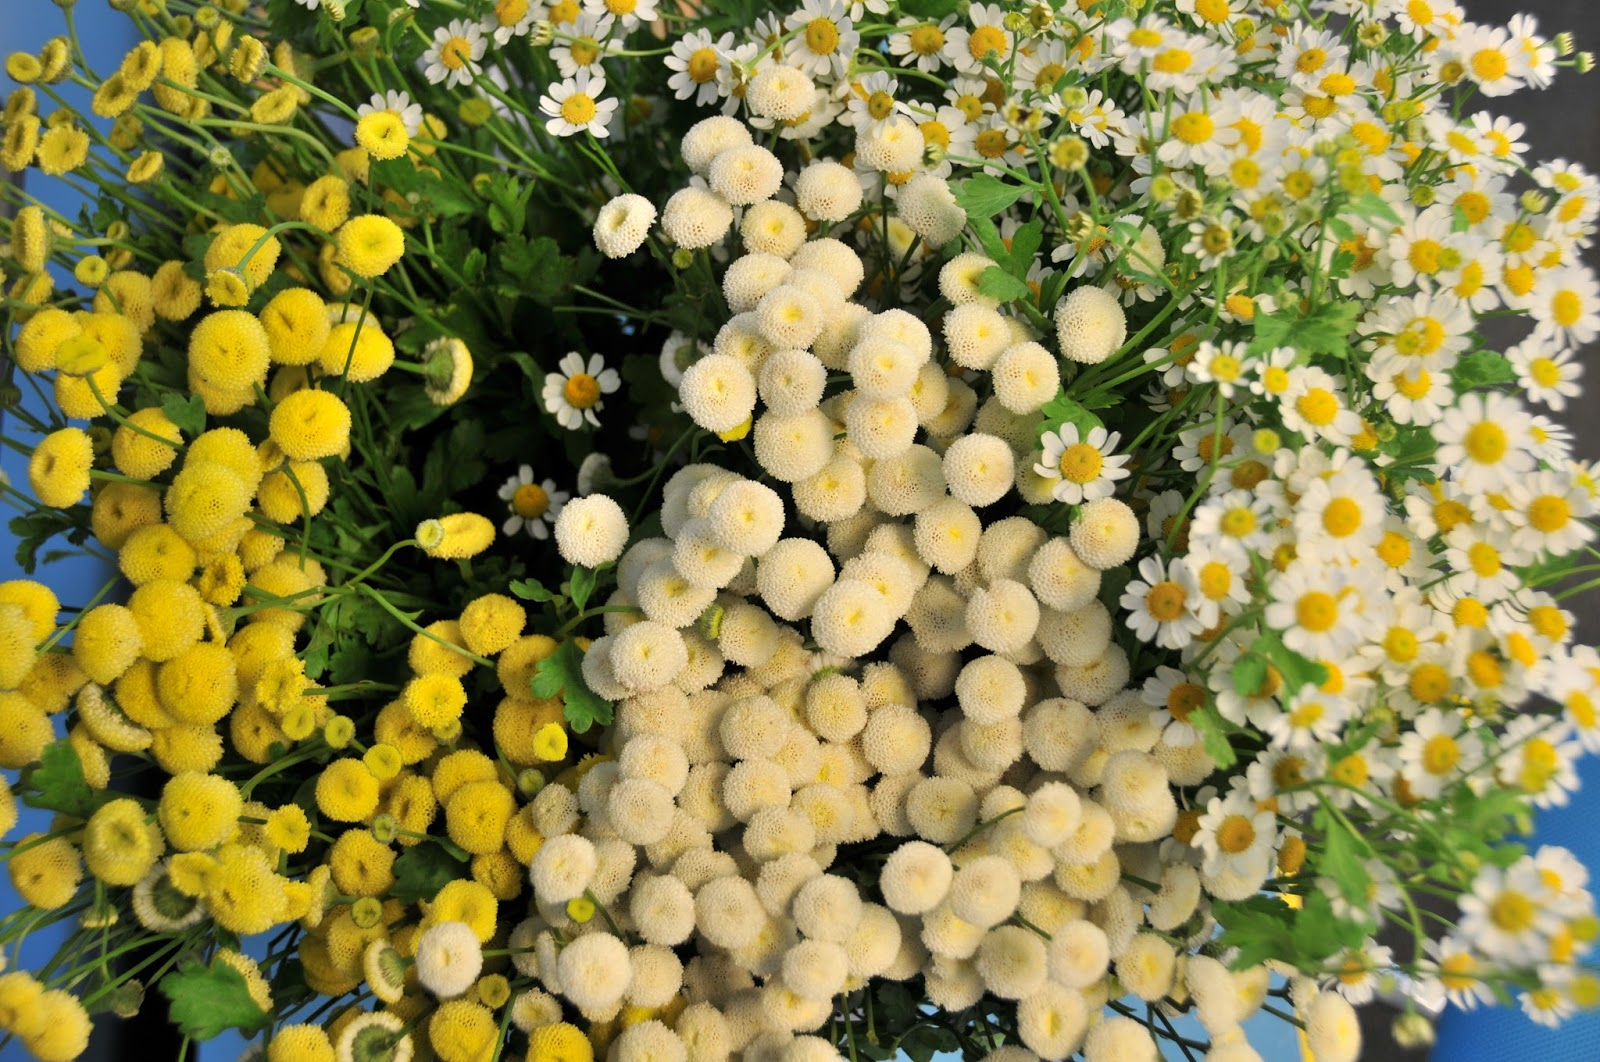 The healing power of matricaria flower talk yellow button white button and white daisy matricaria izmirmasajfo Image collections